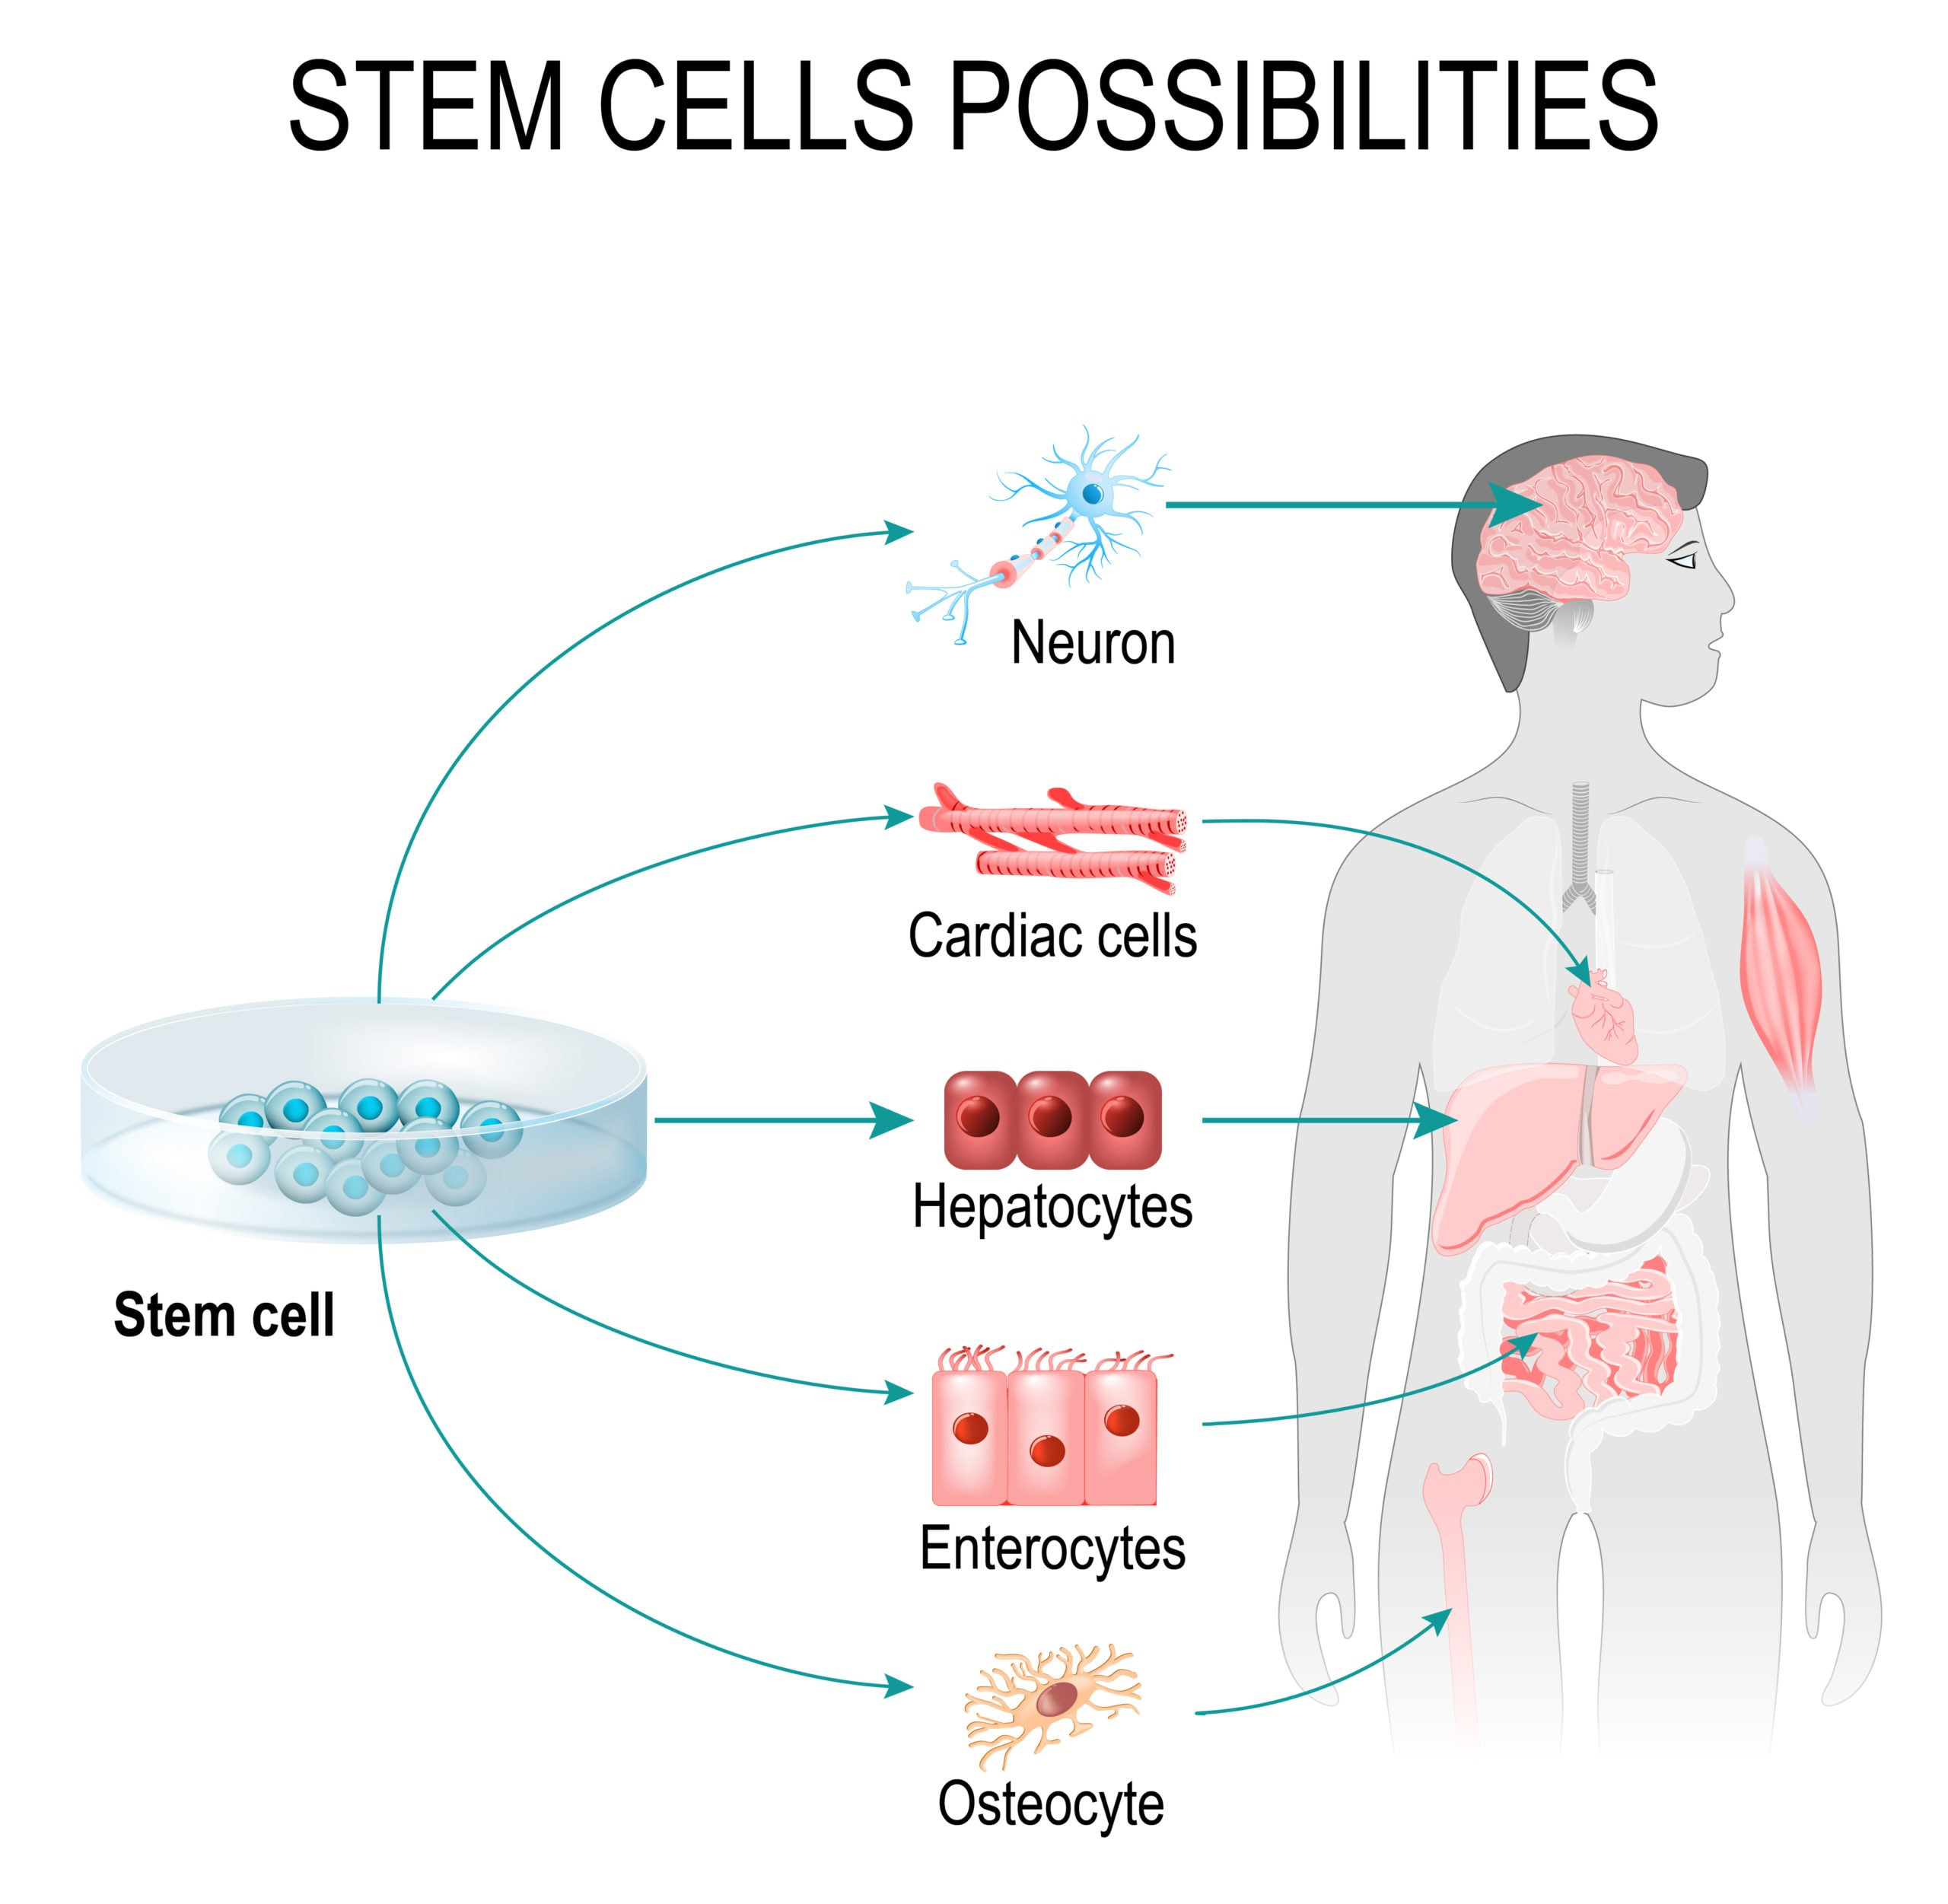 Cellular Recovery Stem Cells Possibilities | Fighting Arts Health Lab